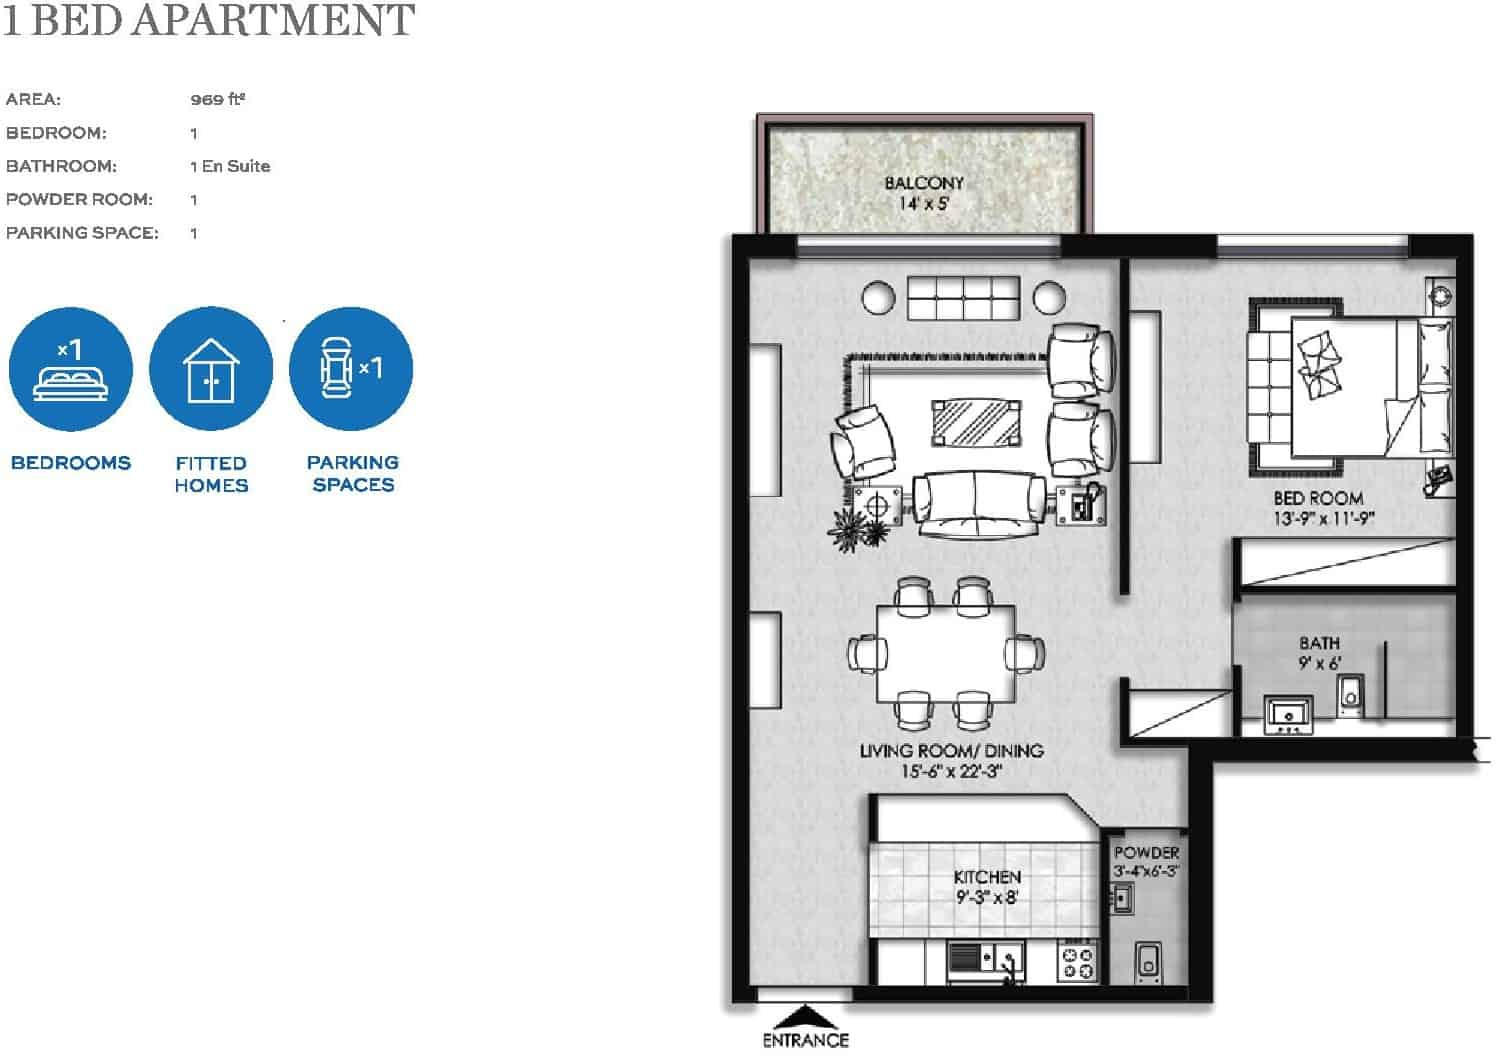 The Heights Eighteen 1 Bed Apartment Layout Plan